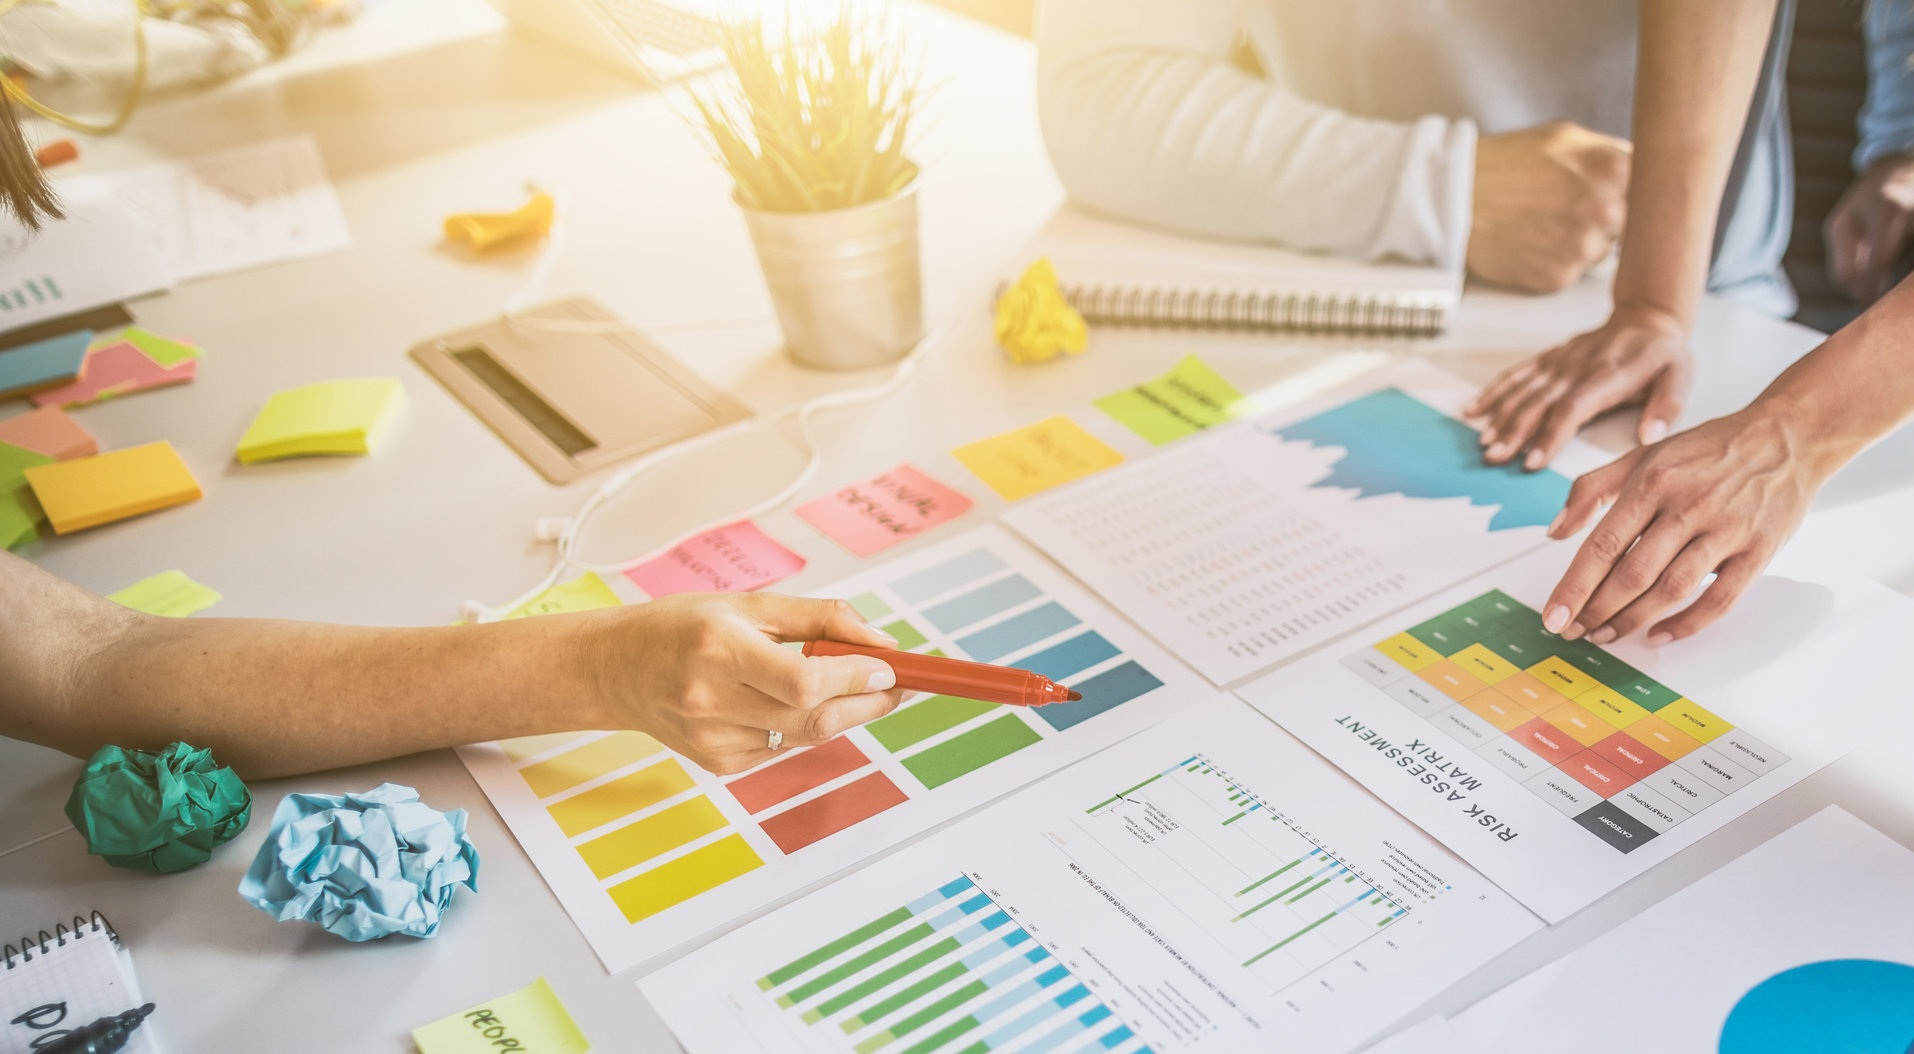 BUSINESS PLANNING - Whether you're establishing a business or working to crystallize your message, we're the partners you need to put your vision into words. We'll help you define yourself in concise, strong language that speaks to your audiences so you'll capture people the moment they interact with you.